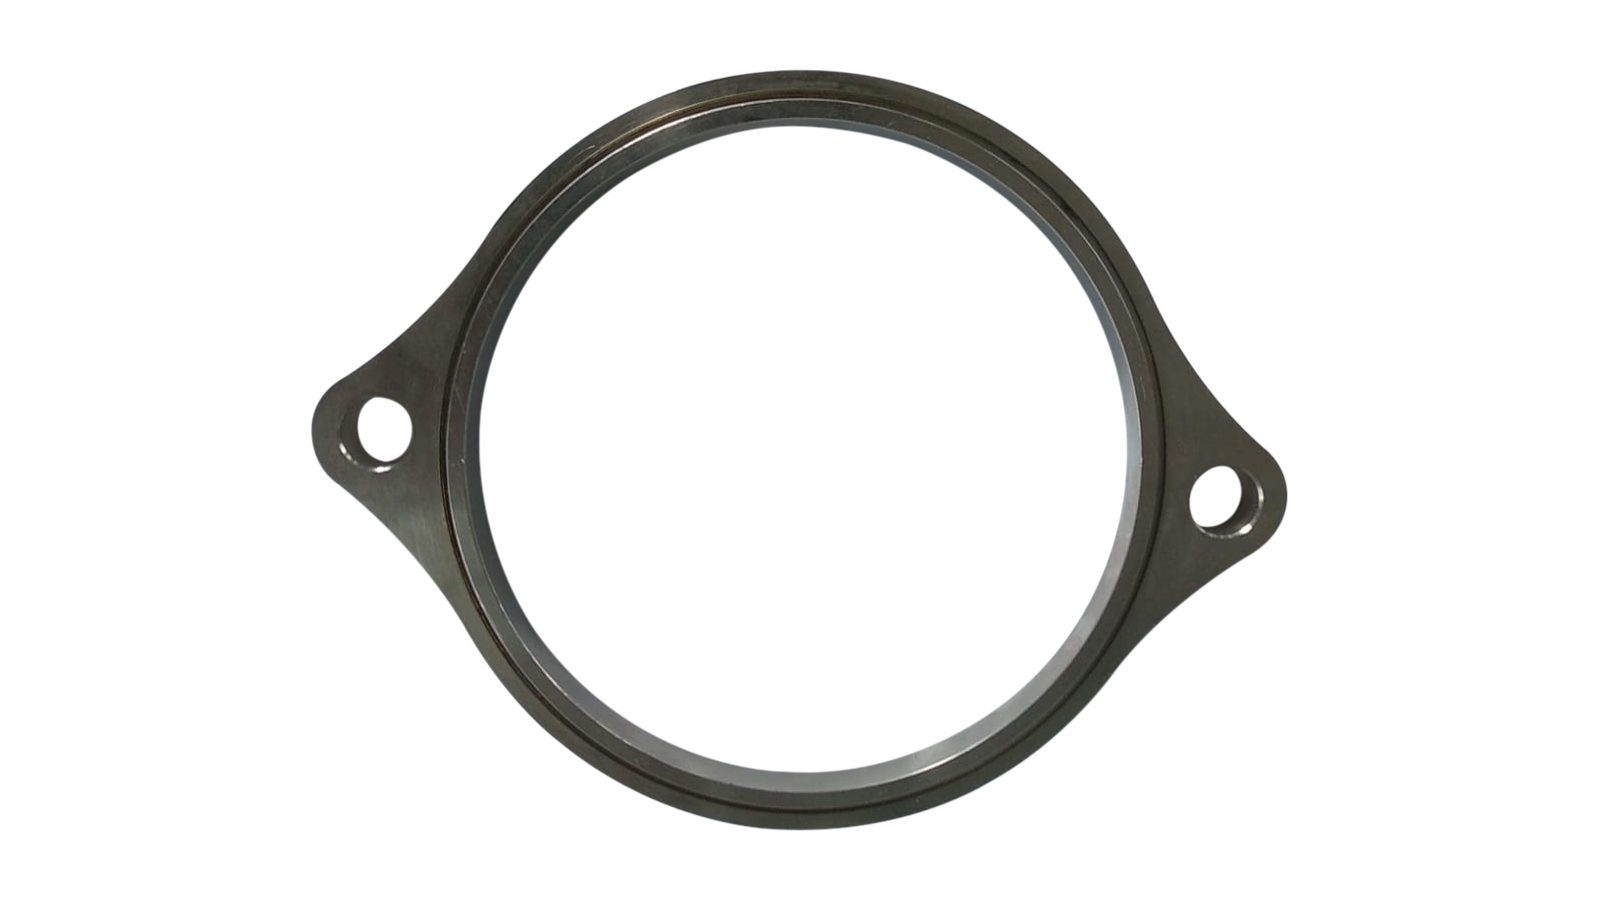 Stainless steel Spacer ring to mount labyrinth bearing seals